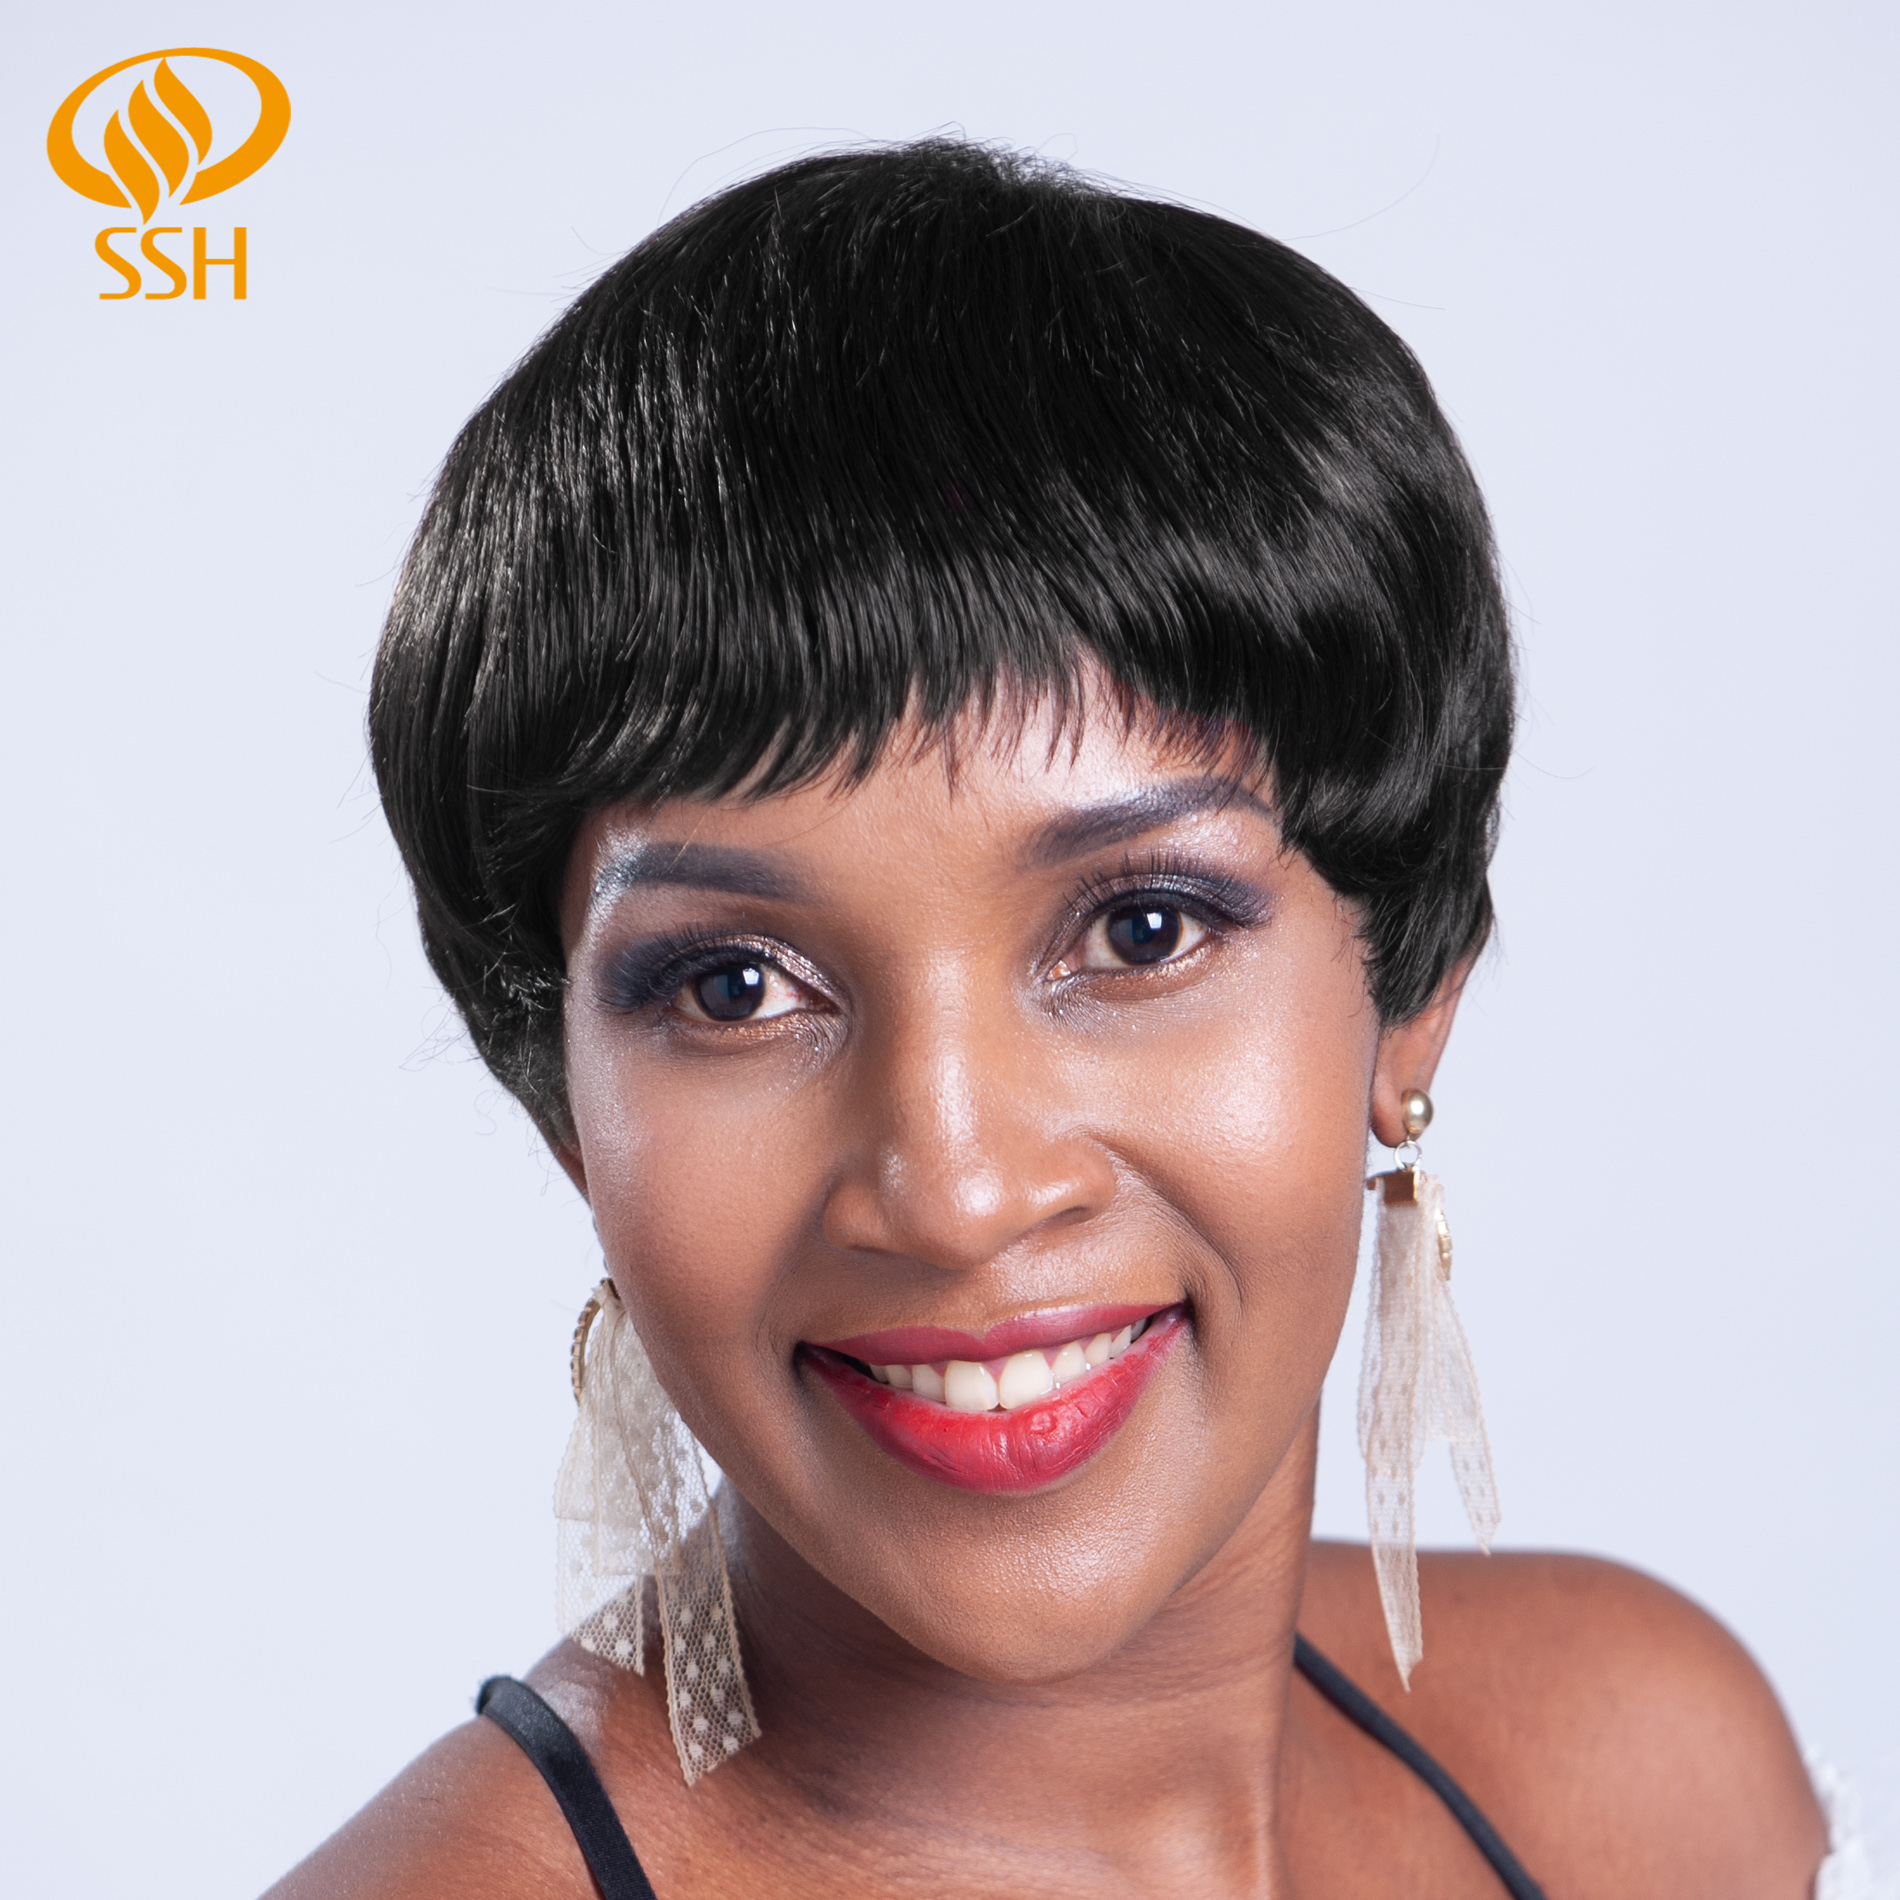 SSH Natural Straight Non-Remy Short Pixie Cut Human Hair Wig Shedding Free